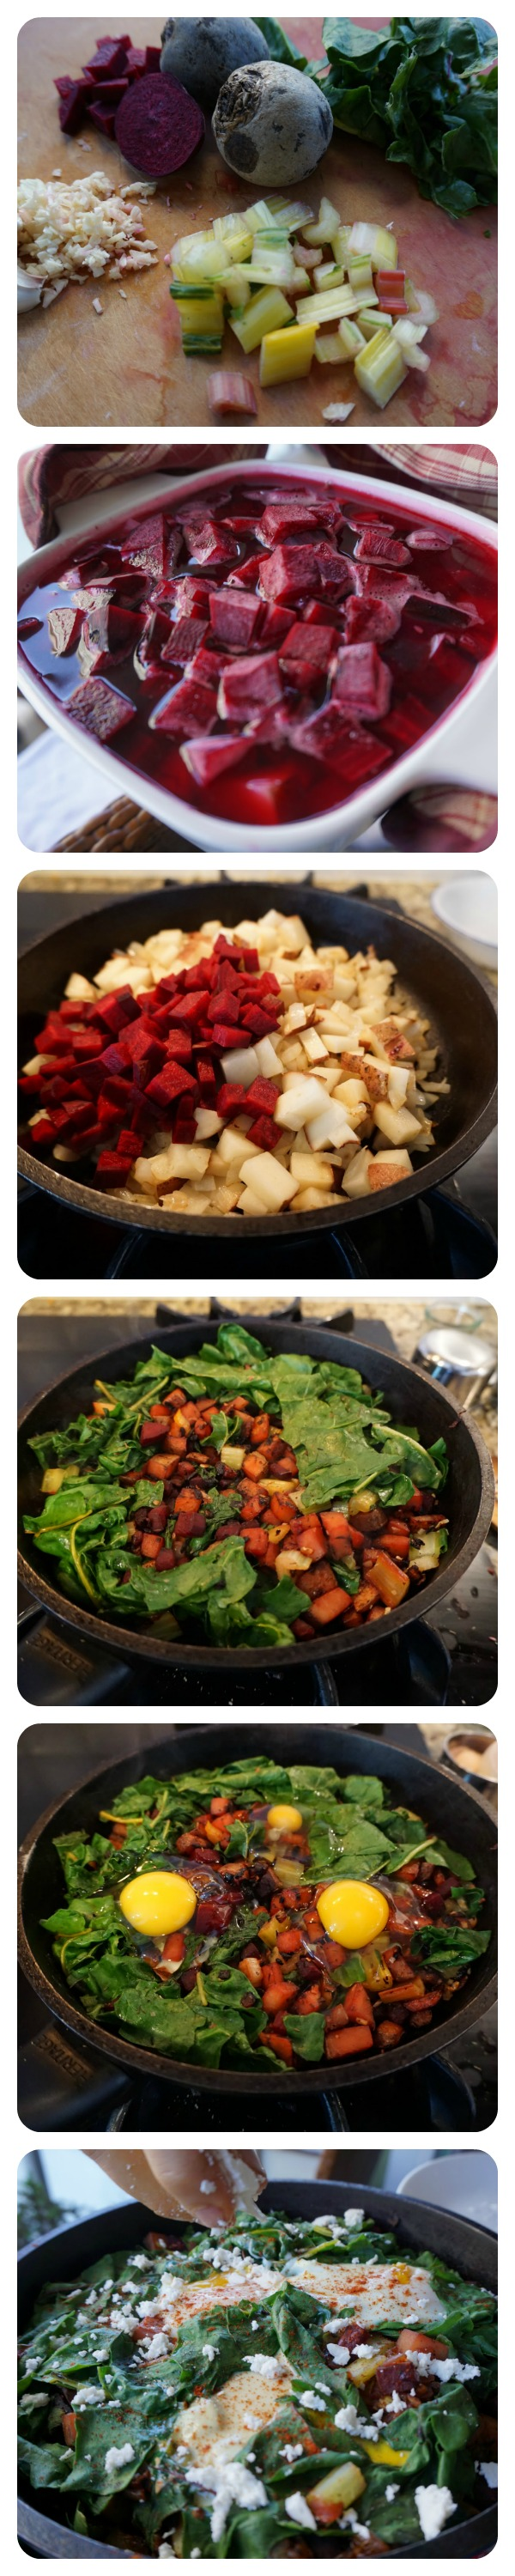 1. chop  2. The beets and potatoes cook quickly in the microwave  3/4. Sautee the veggies and add greens  5. Waiting for the eggs to bake to finish the dish  6. Finishing our hash with a light sprinkling of feta cheese!